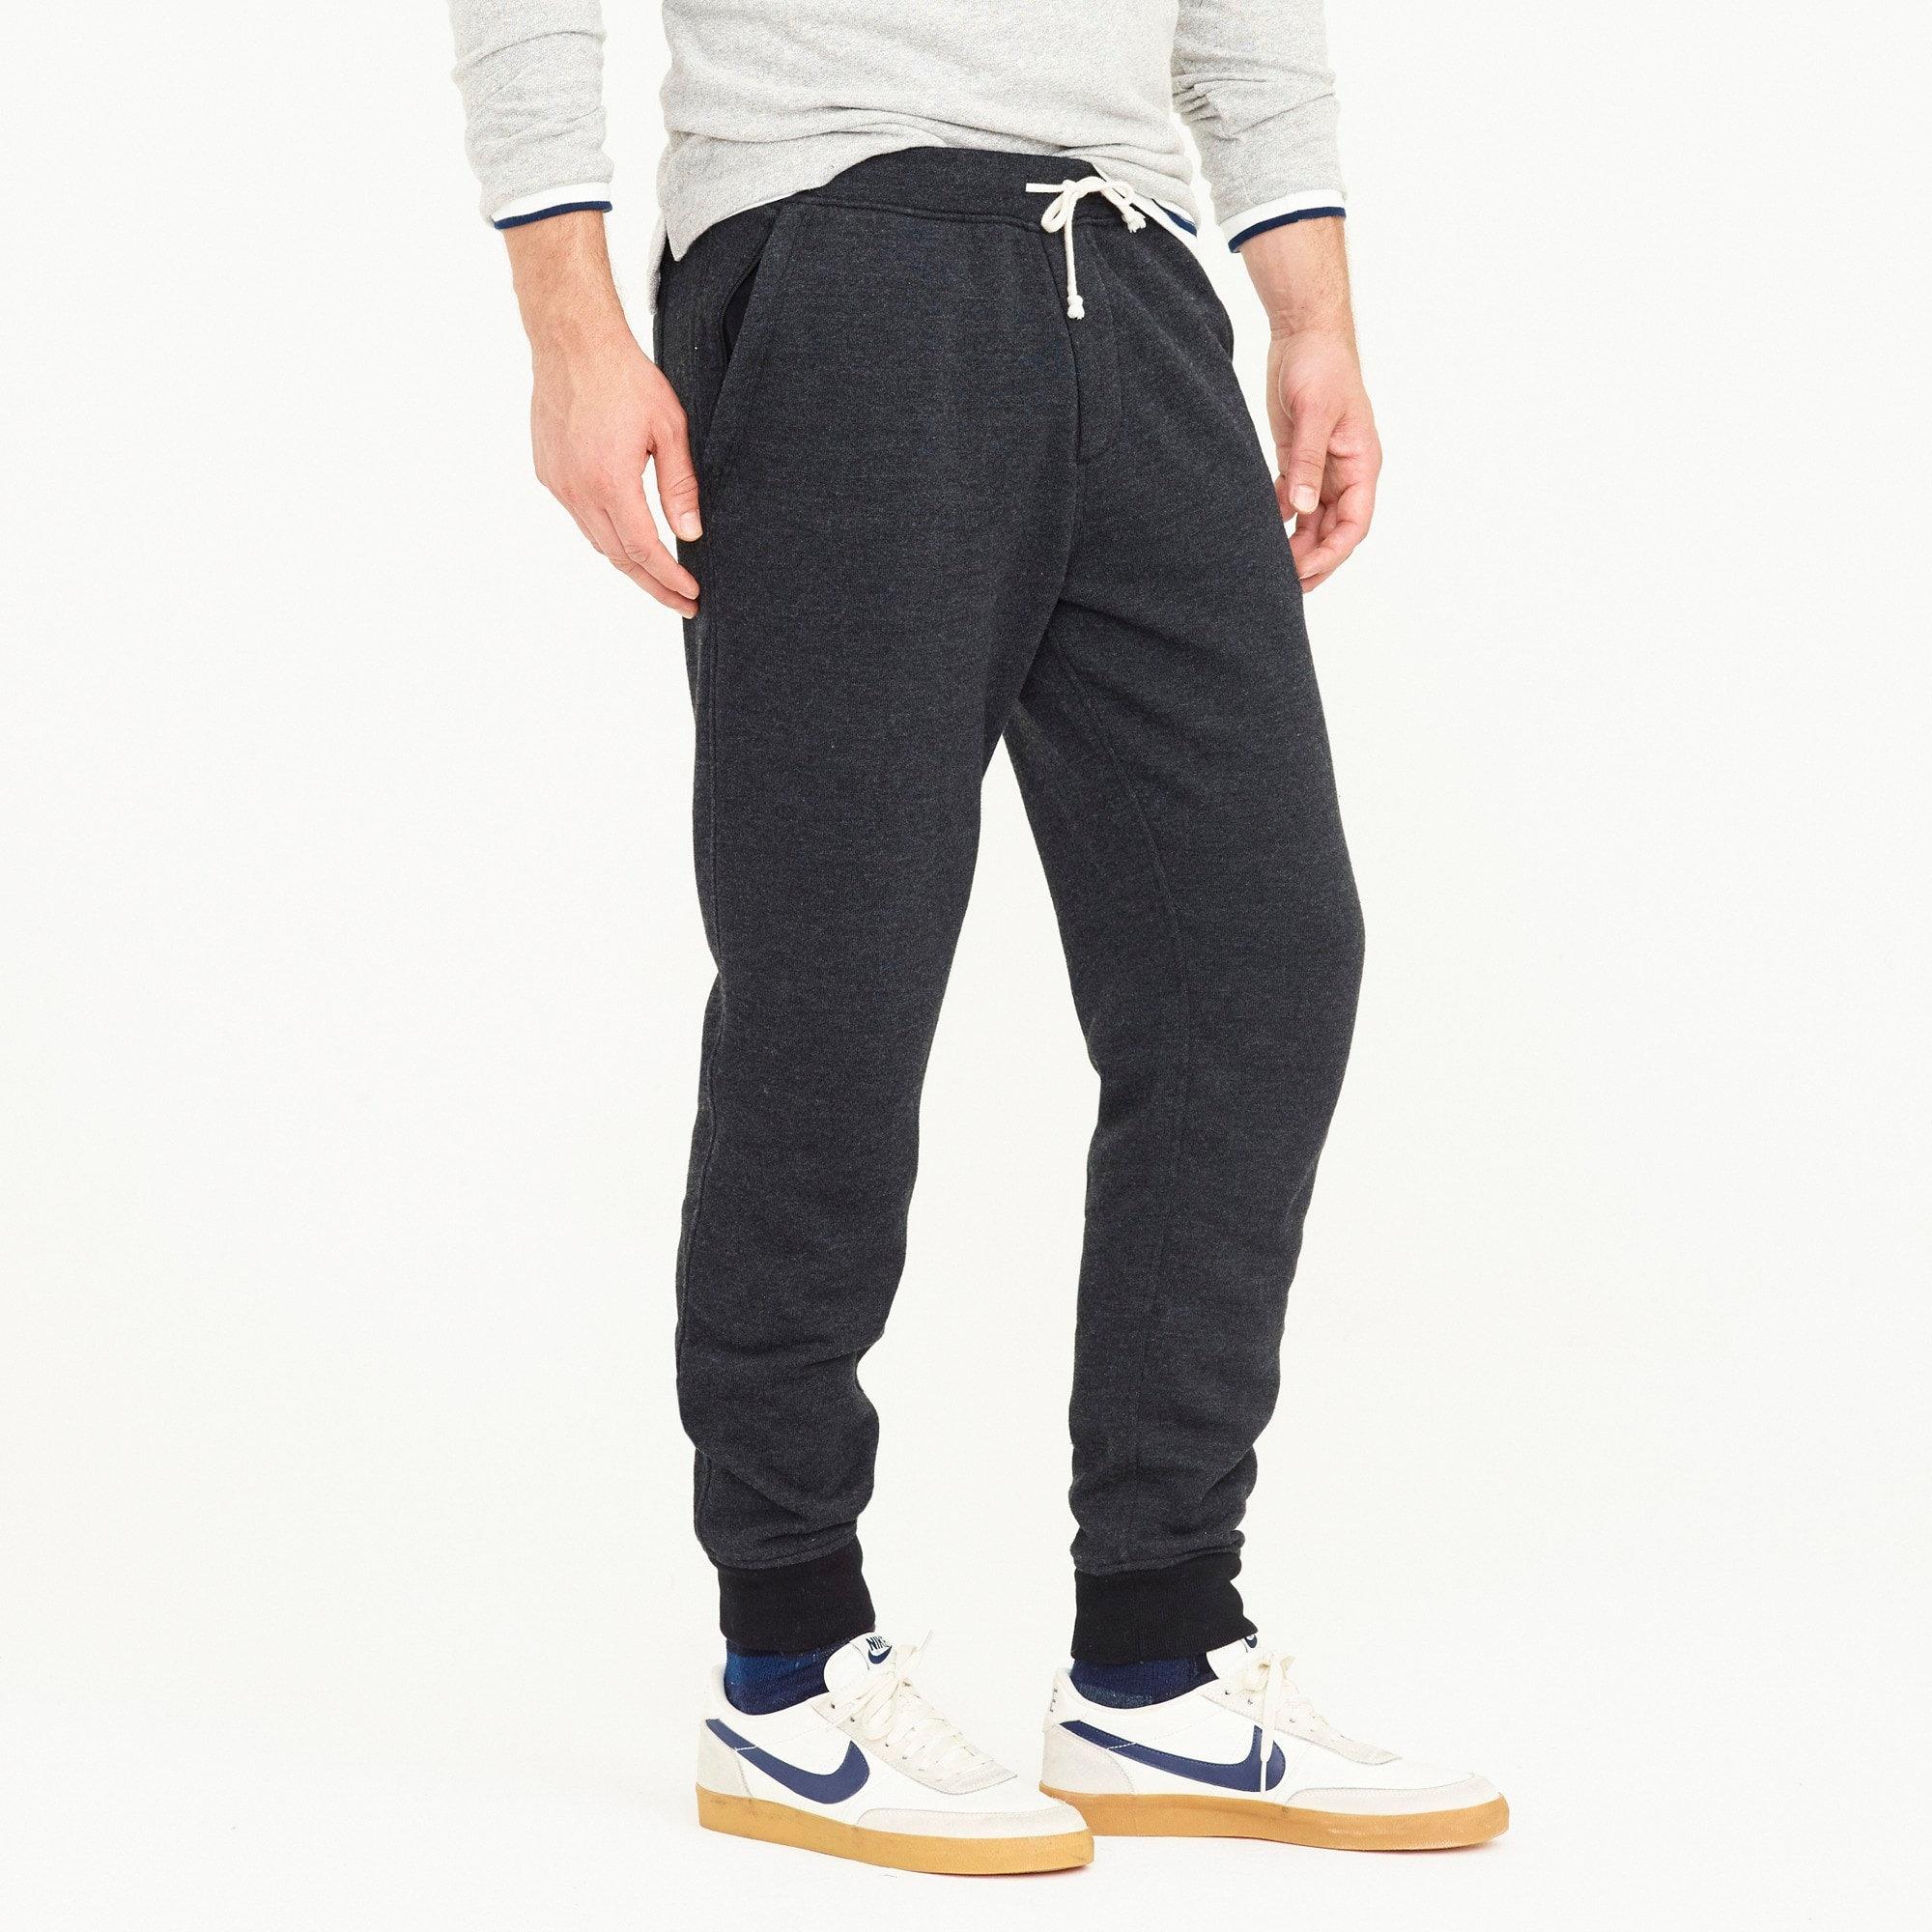 Image 3 for Slim classic zip-pocket sweatpant